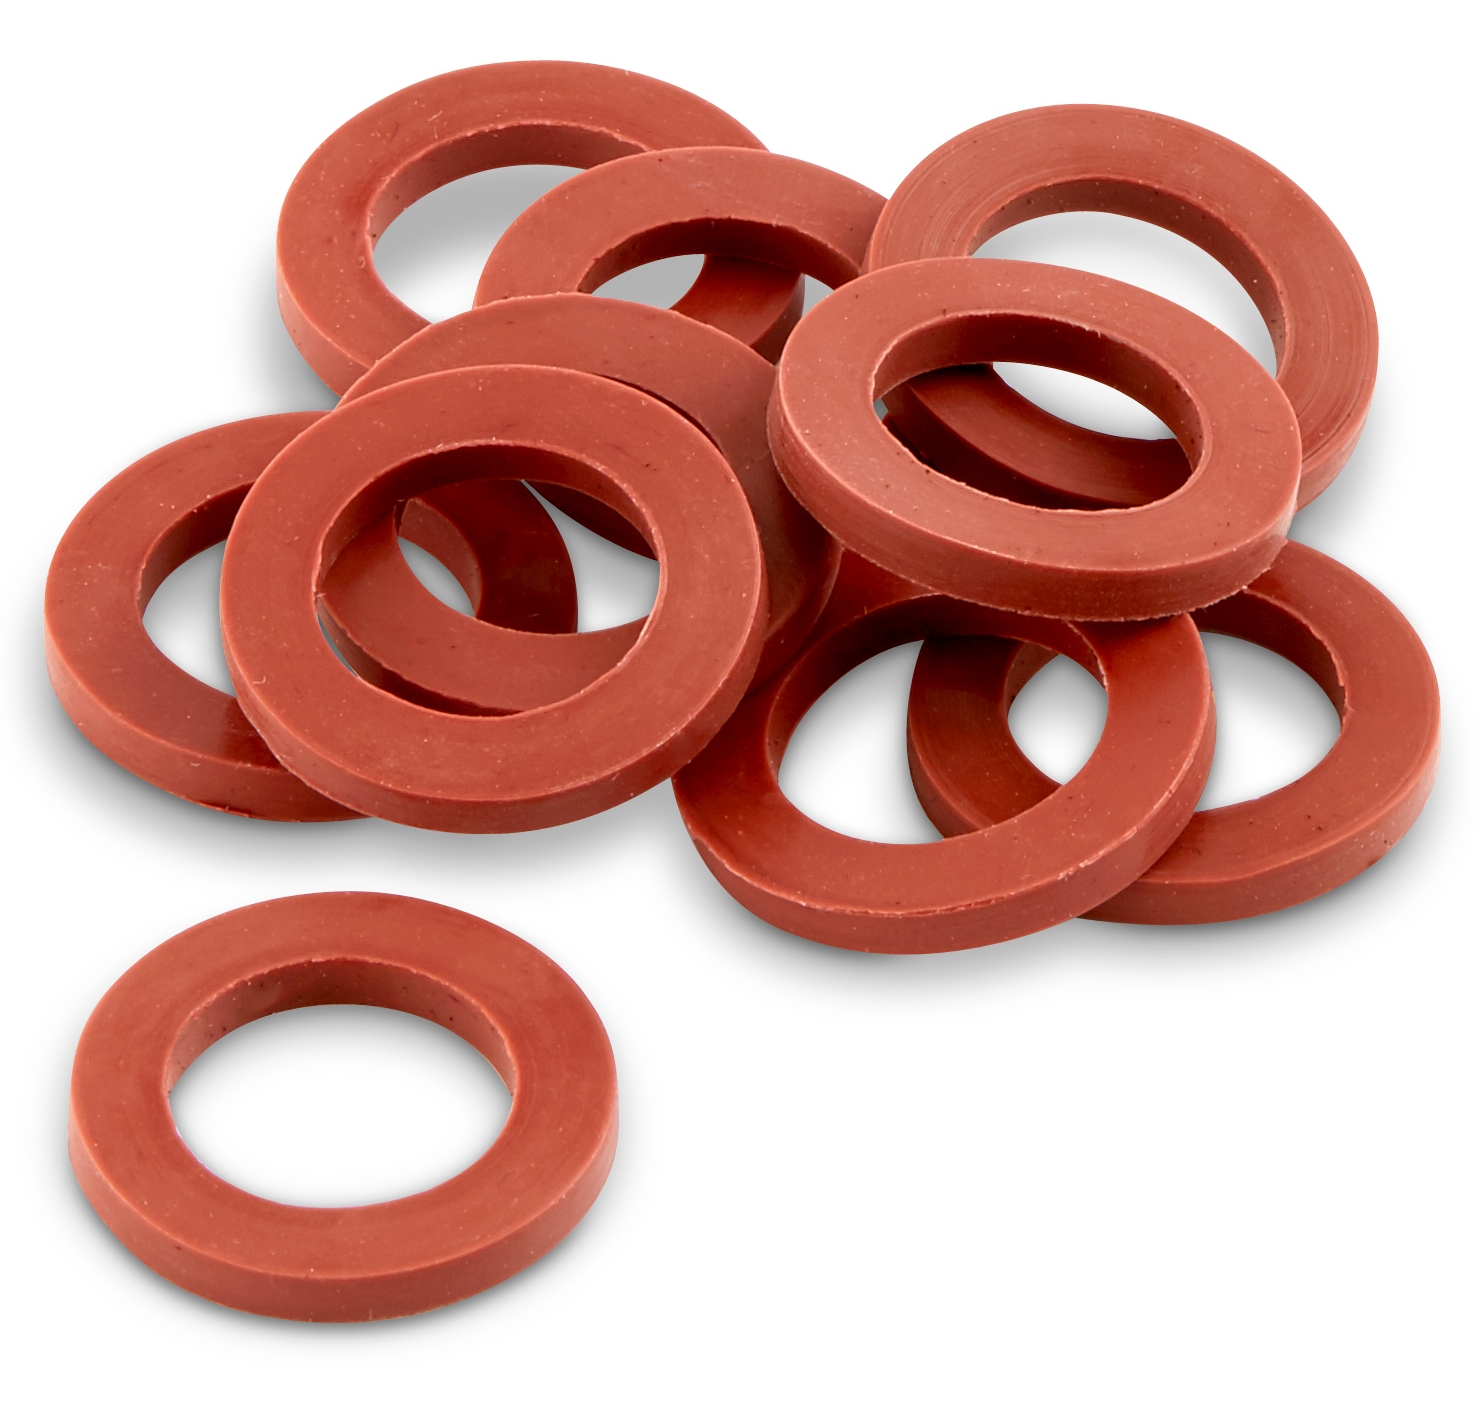 Washers & Bushings